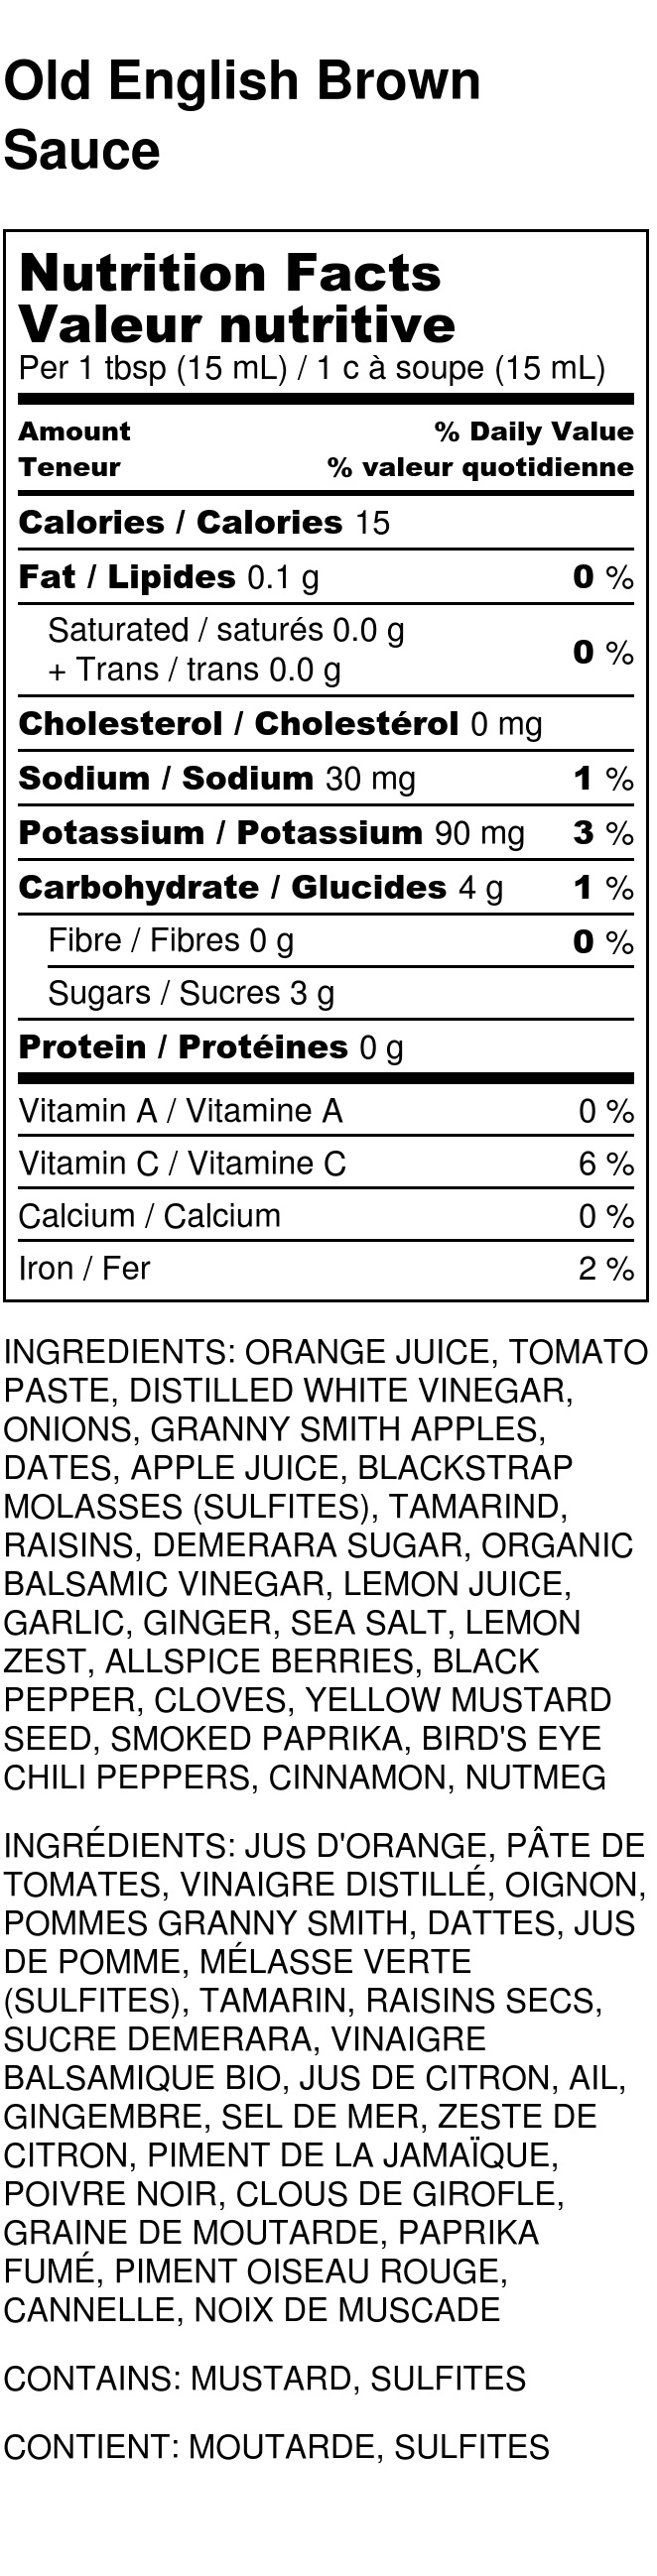 Old English Brown Sauce - Nutrition Label.jpg